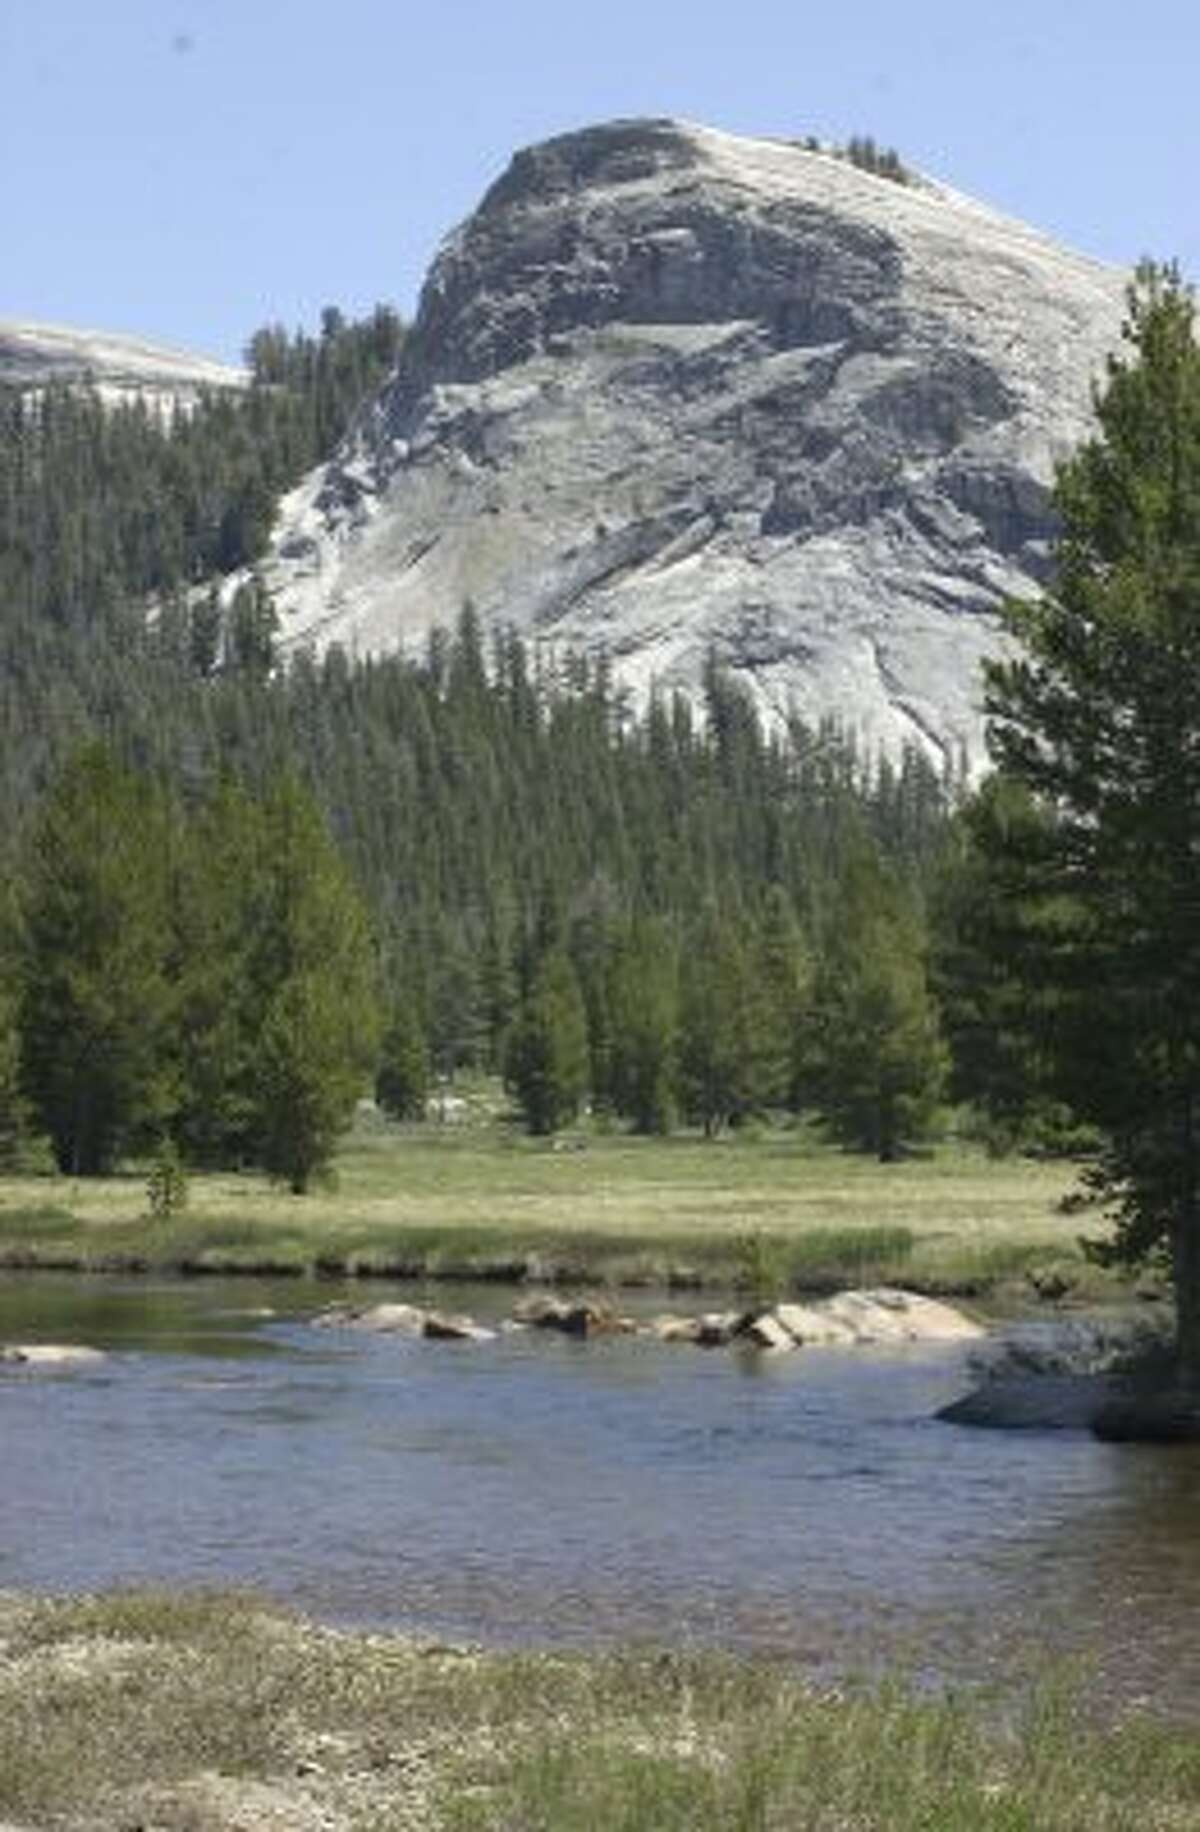 A view of Lembert Dome and the Tuolomne River in Tuolumne Meadows at Yosemite National Park. A rock climber who had just proposed to his girlfriend fell 300 feet to his death while climbing alone in the Tuolumne Meadows on Saturday.